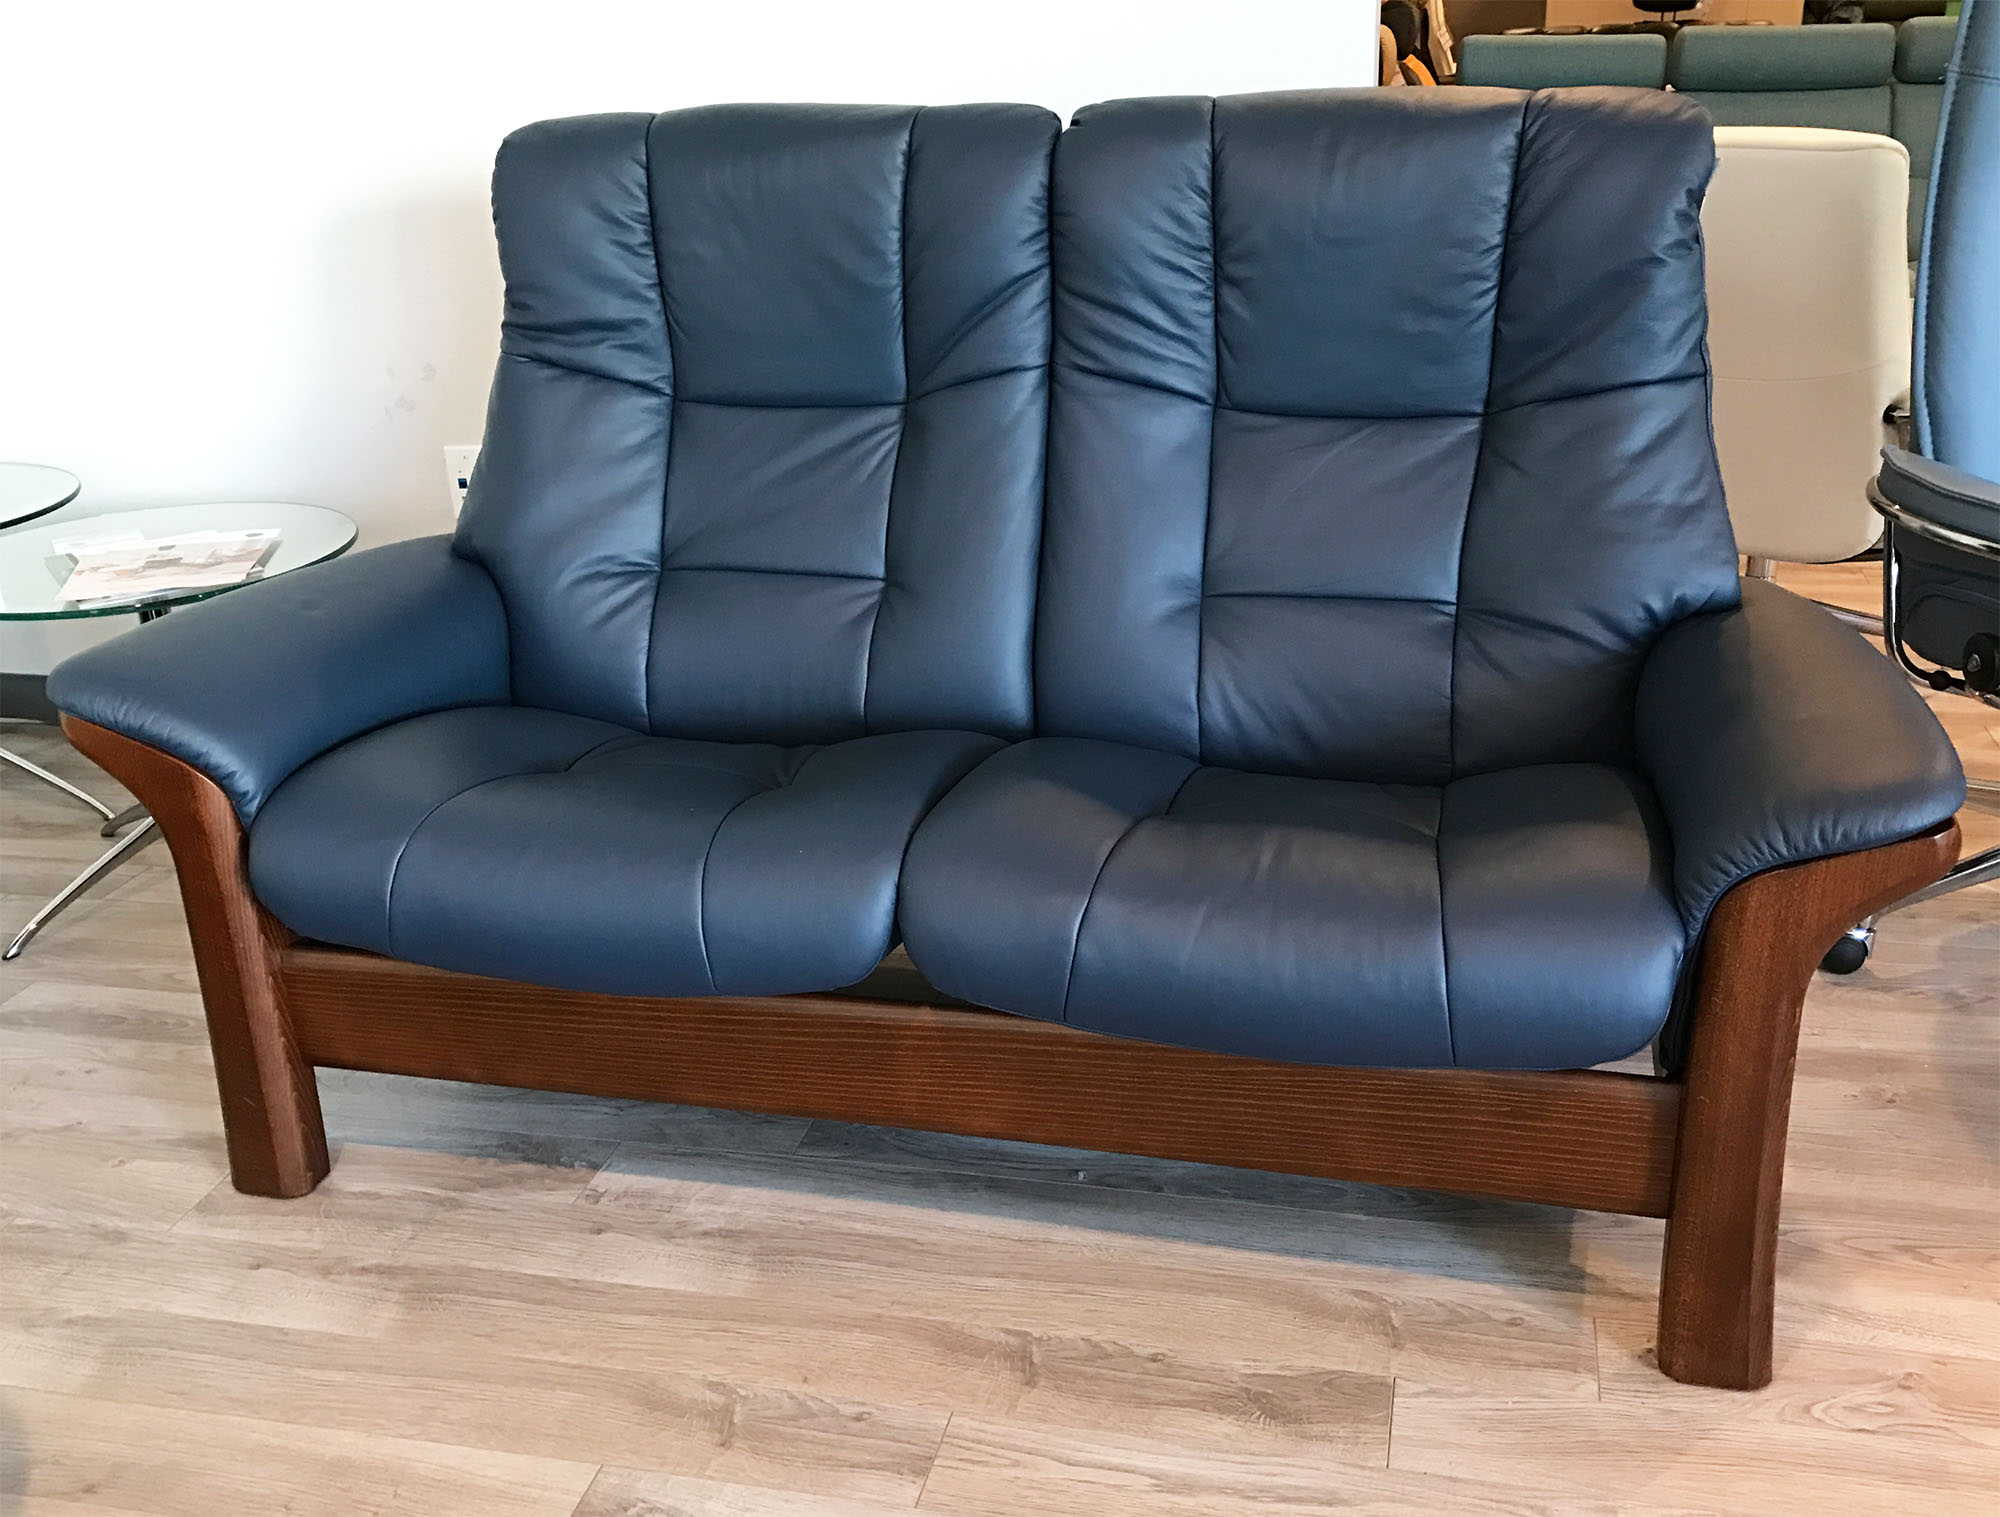 Stressless Buckingham 2 Seat High Back Reclining Loveseat In Paloma Oxford  Blue Leather  Brown Walnut High Back Loveseat58